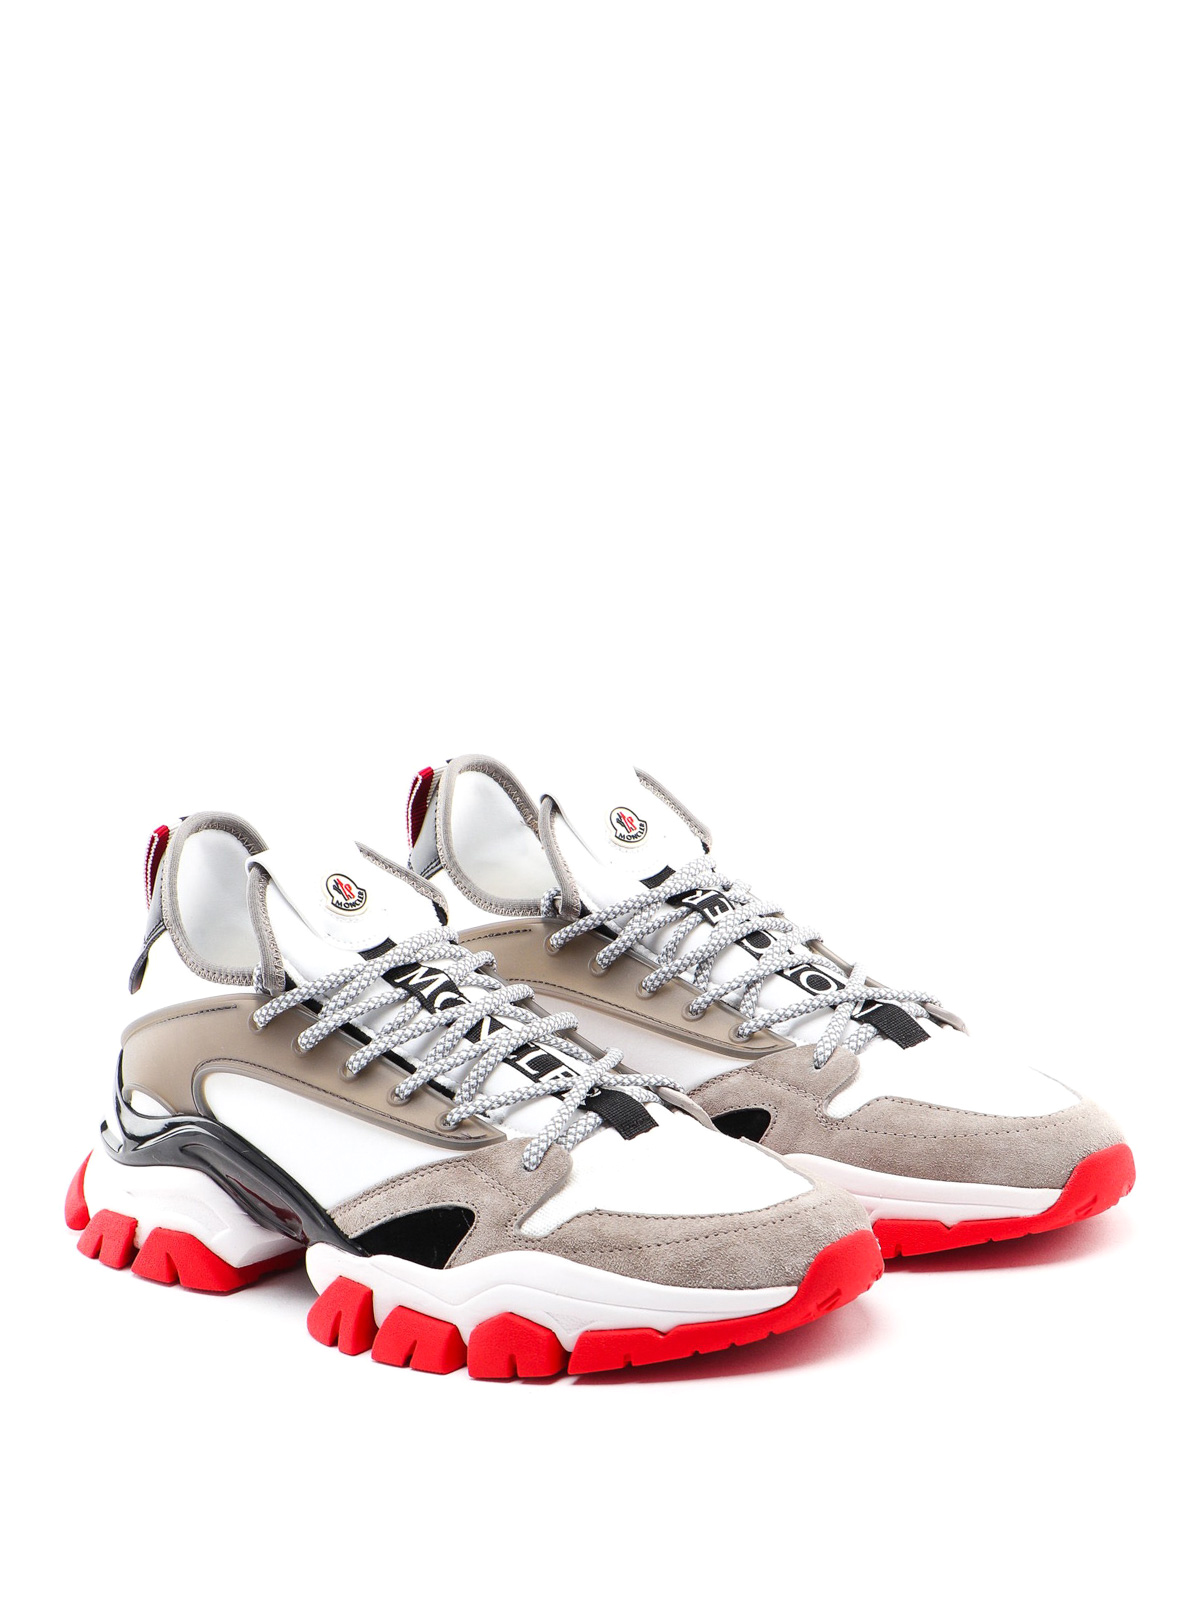 Moncler - Trevor sneakers - trainers